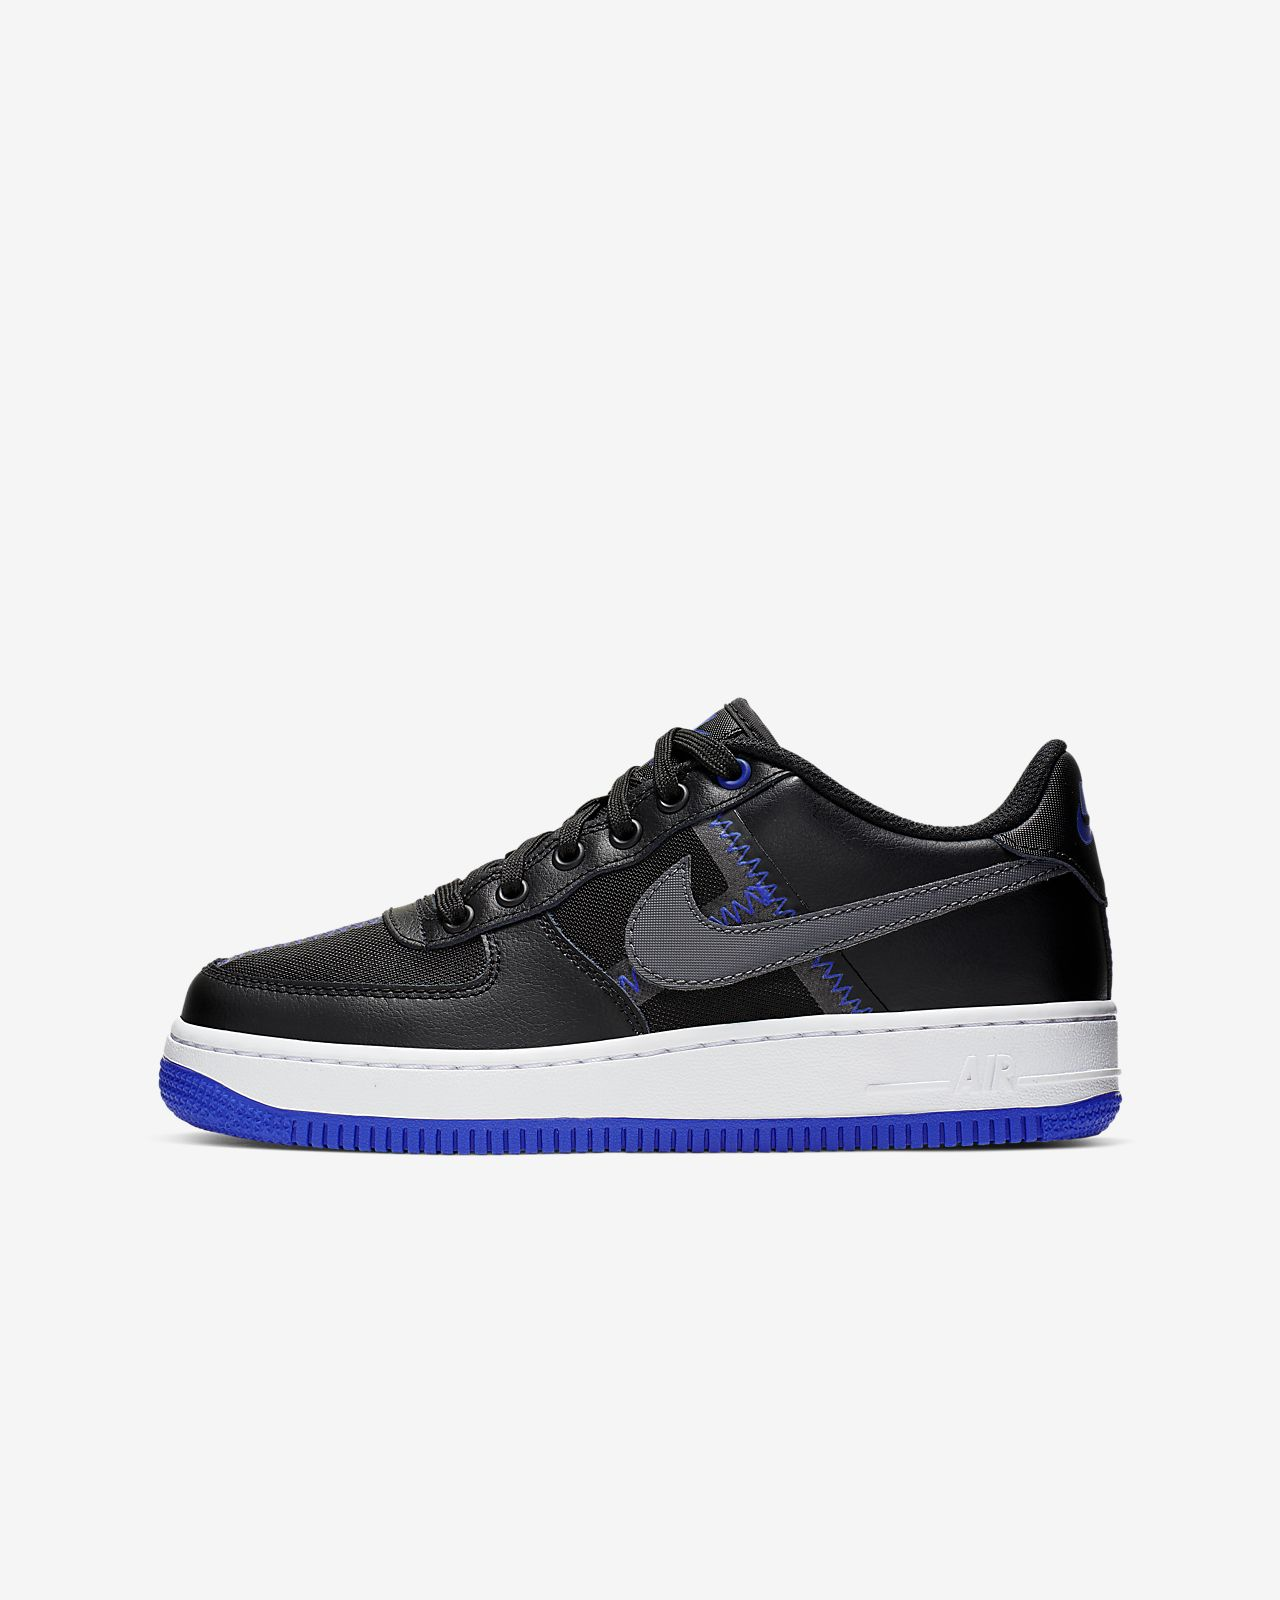 Nike Nike Air Force 1 LV8 Big Kids' Shoe Size 5.5Y (White) Clearance Sale from NIKE | Shop